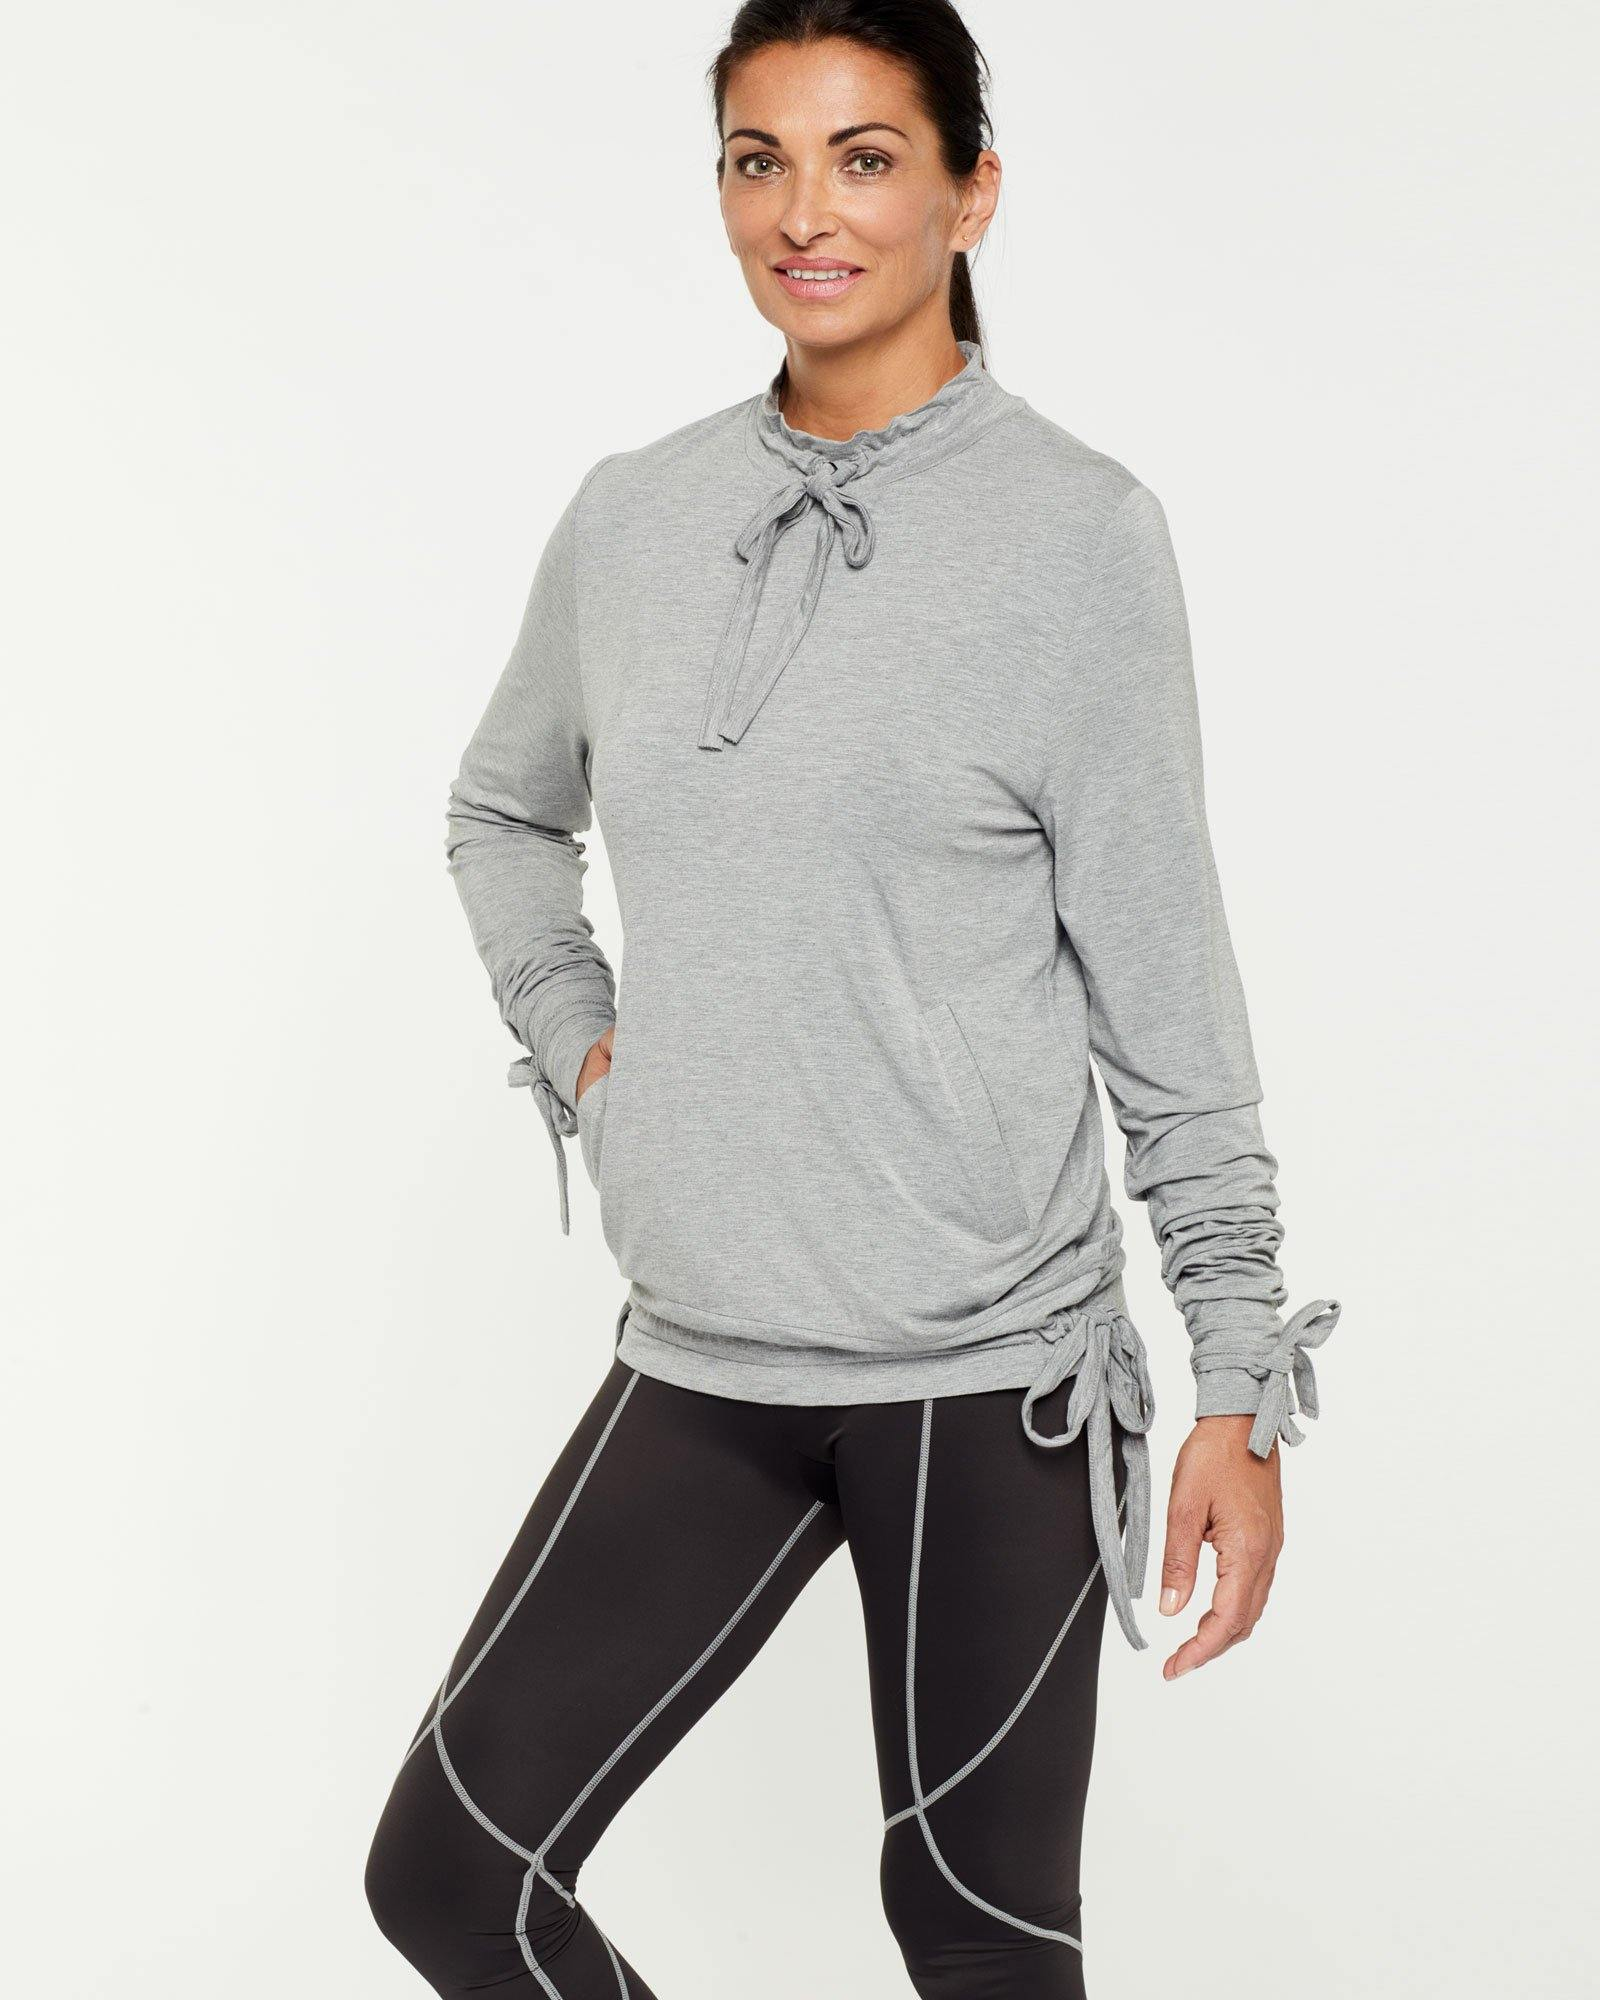 Steely Spinae long sleeve adjustable top with self ties, light grey, bamboo worn with Vastus mid waist full length legging, side view